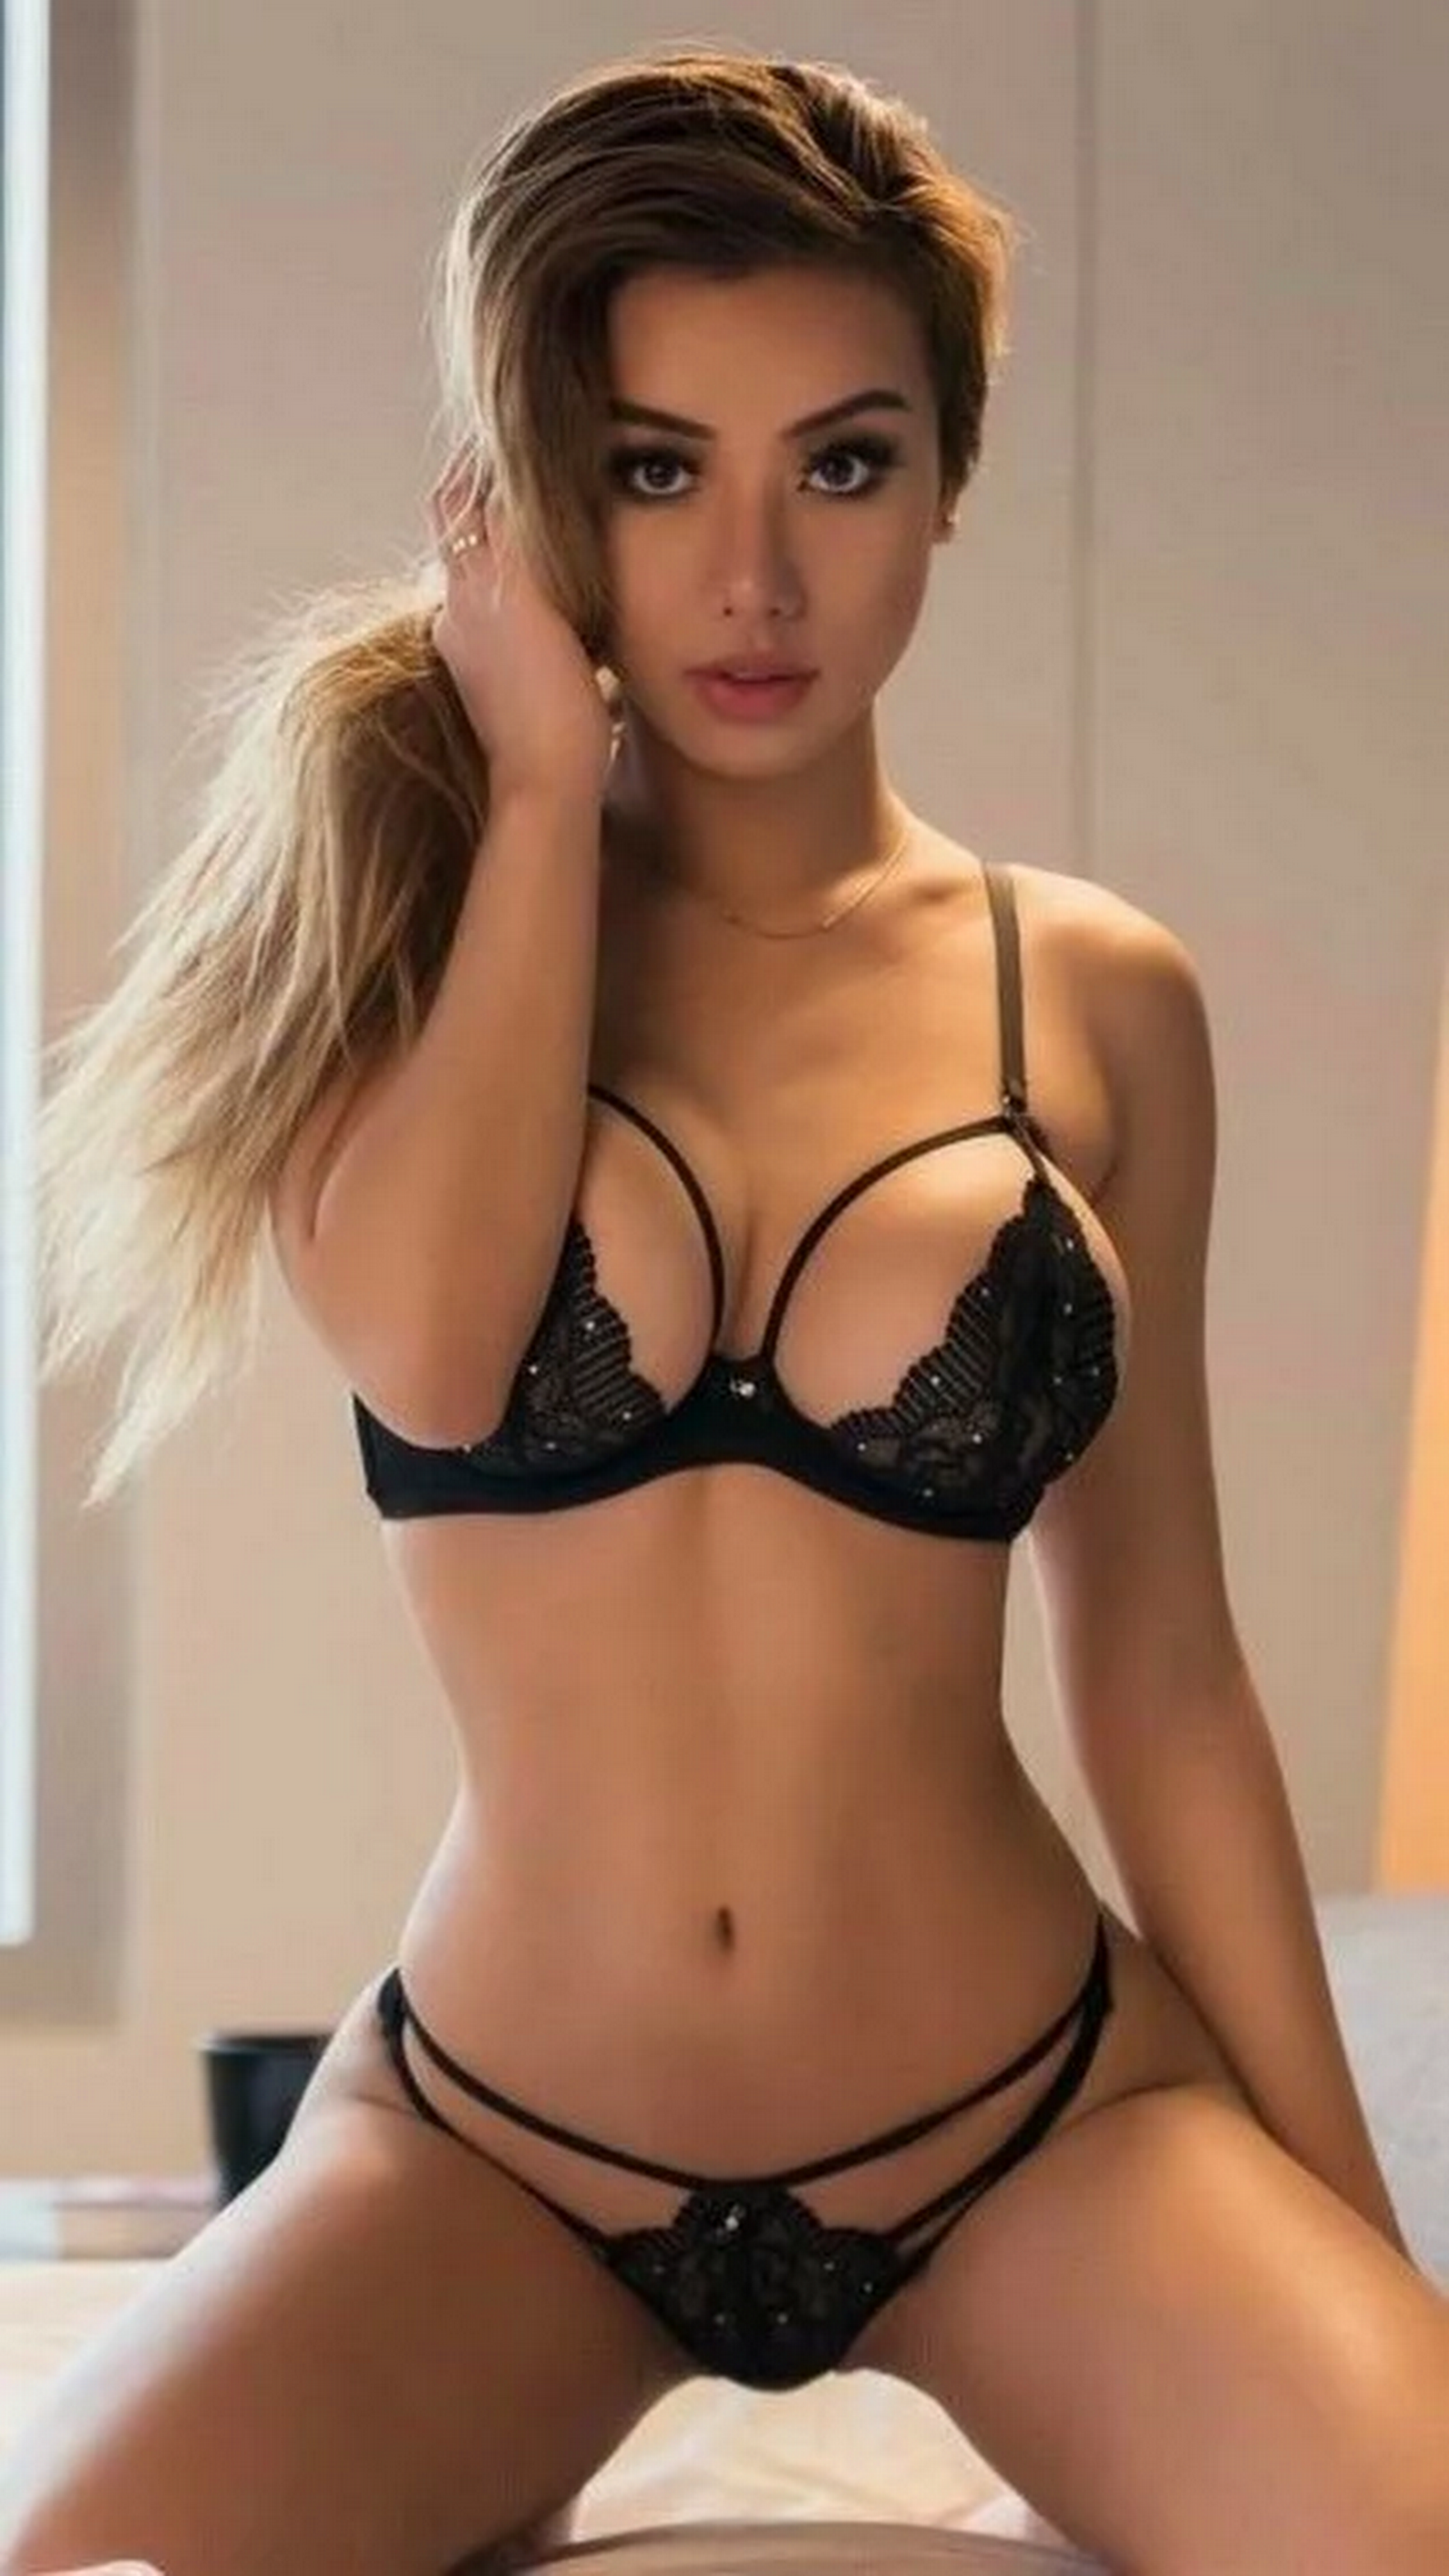 hot body in sexy lingerie